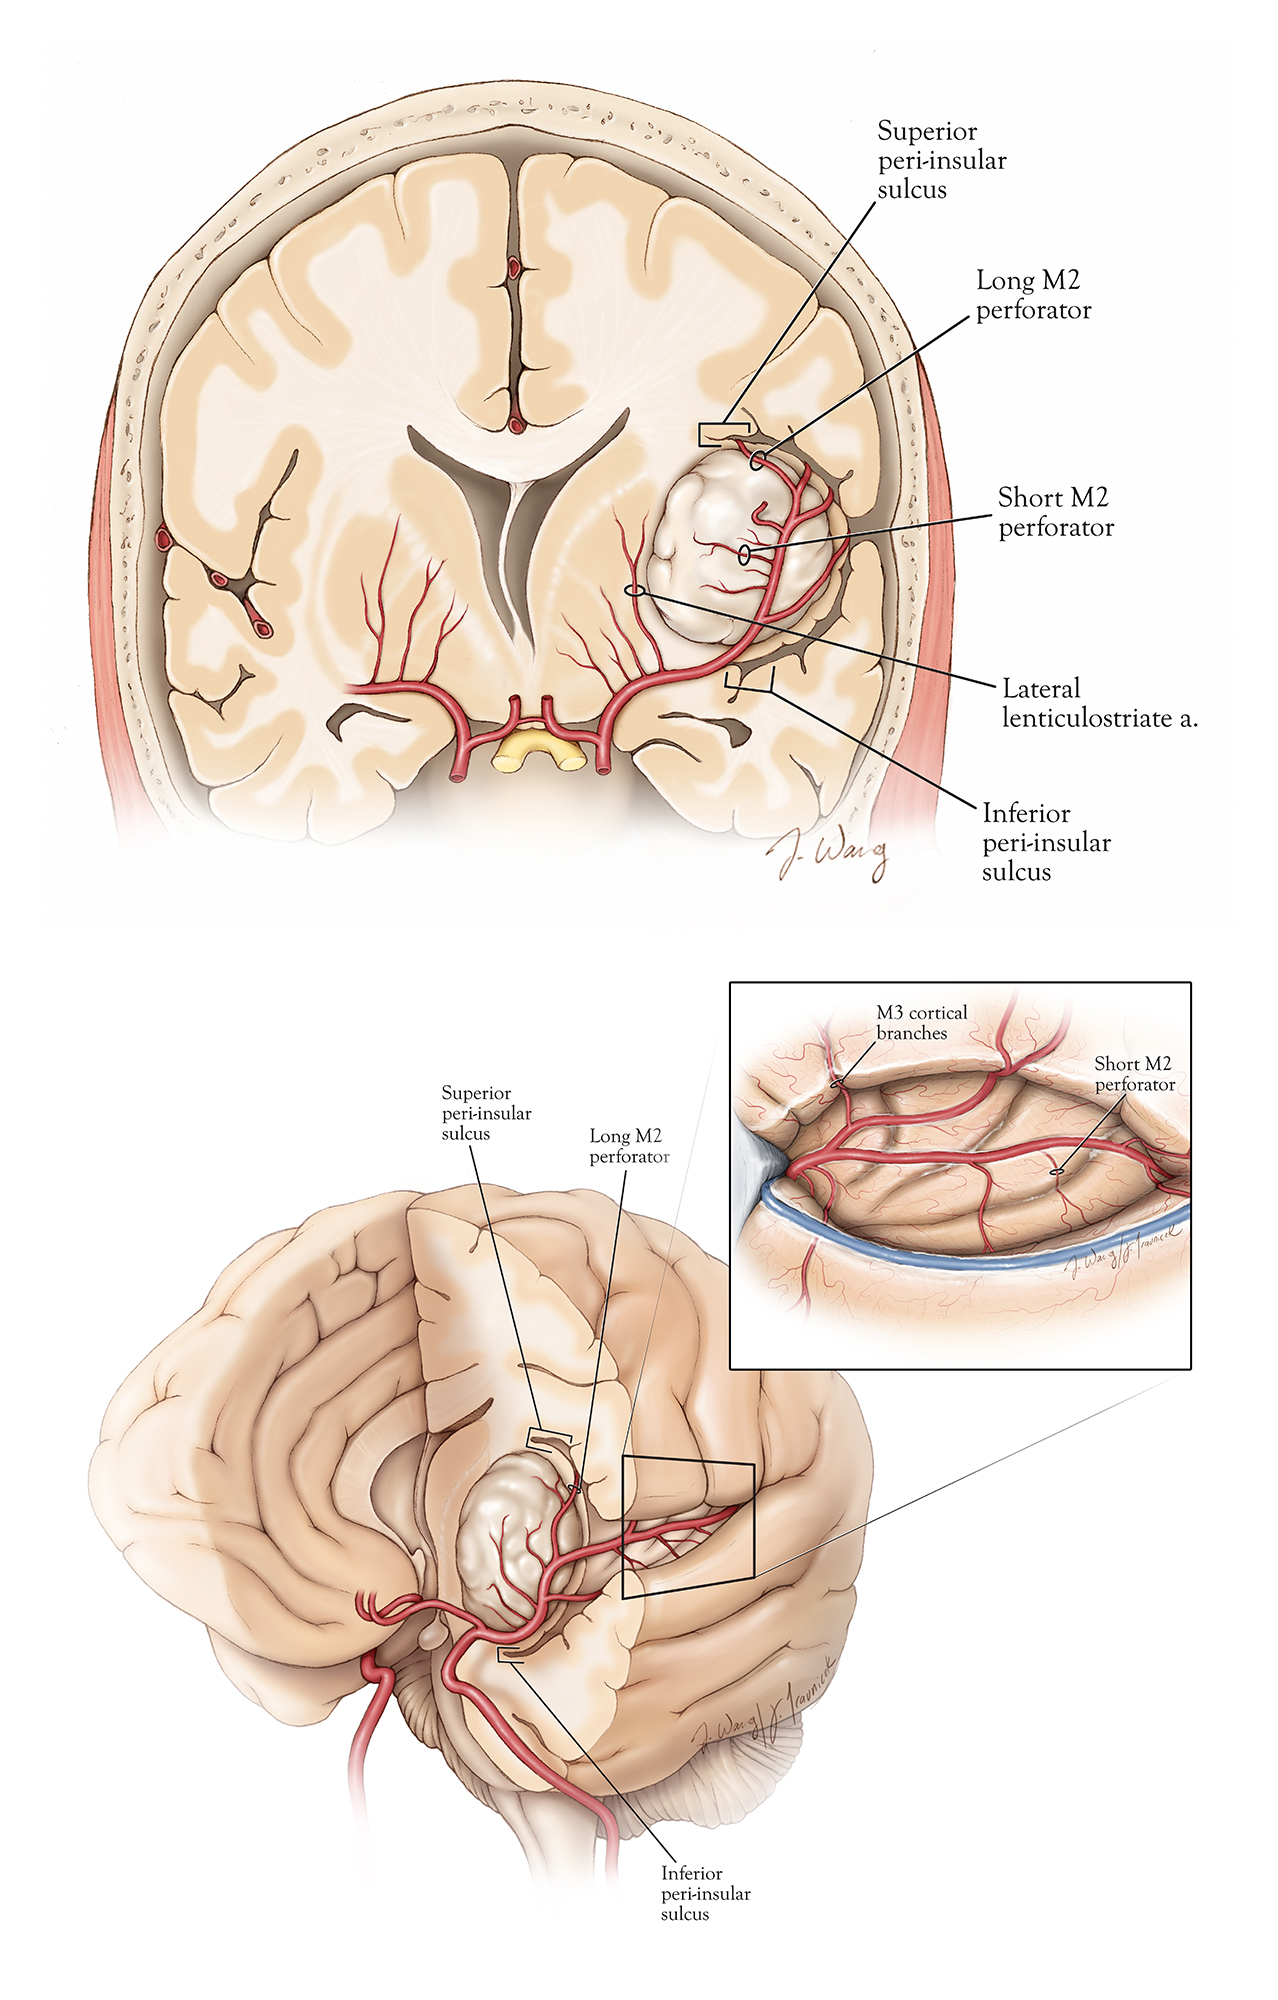 Figure 4: Topography and operative vascular relationships for insular tumors.  Note how the lateral lenticulostriate arteries originate from the M1 segment and represent the medial limit of resection.  Short M2 perforators supply the tumor.  Long M2 perforators may travel through the tumor, but most likely supply corona radiata (especially the ones travelling toward the central sulcus) and must be preserved (upper image).  The superior and inferior peri-insular sulci represent the lateral superior and inferior anatomic margins of the resection (lower image,) and their exposure ensures adequate Sylvian fissure split so that residual tumor does not hide within the blind spots of the operator.